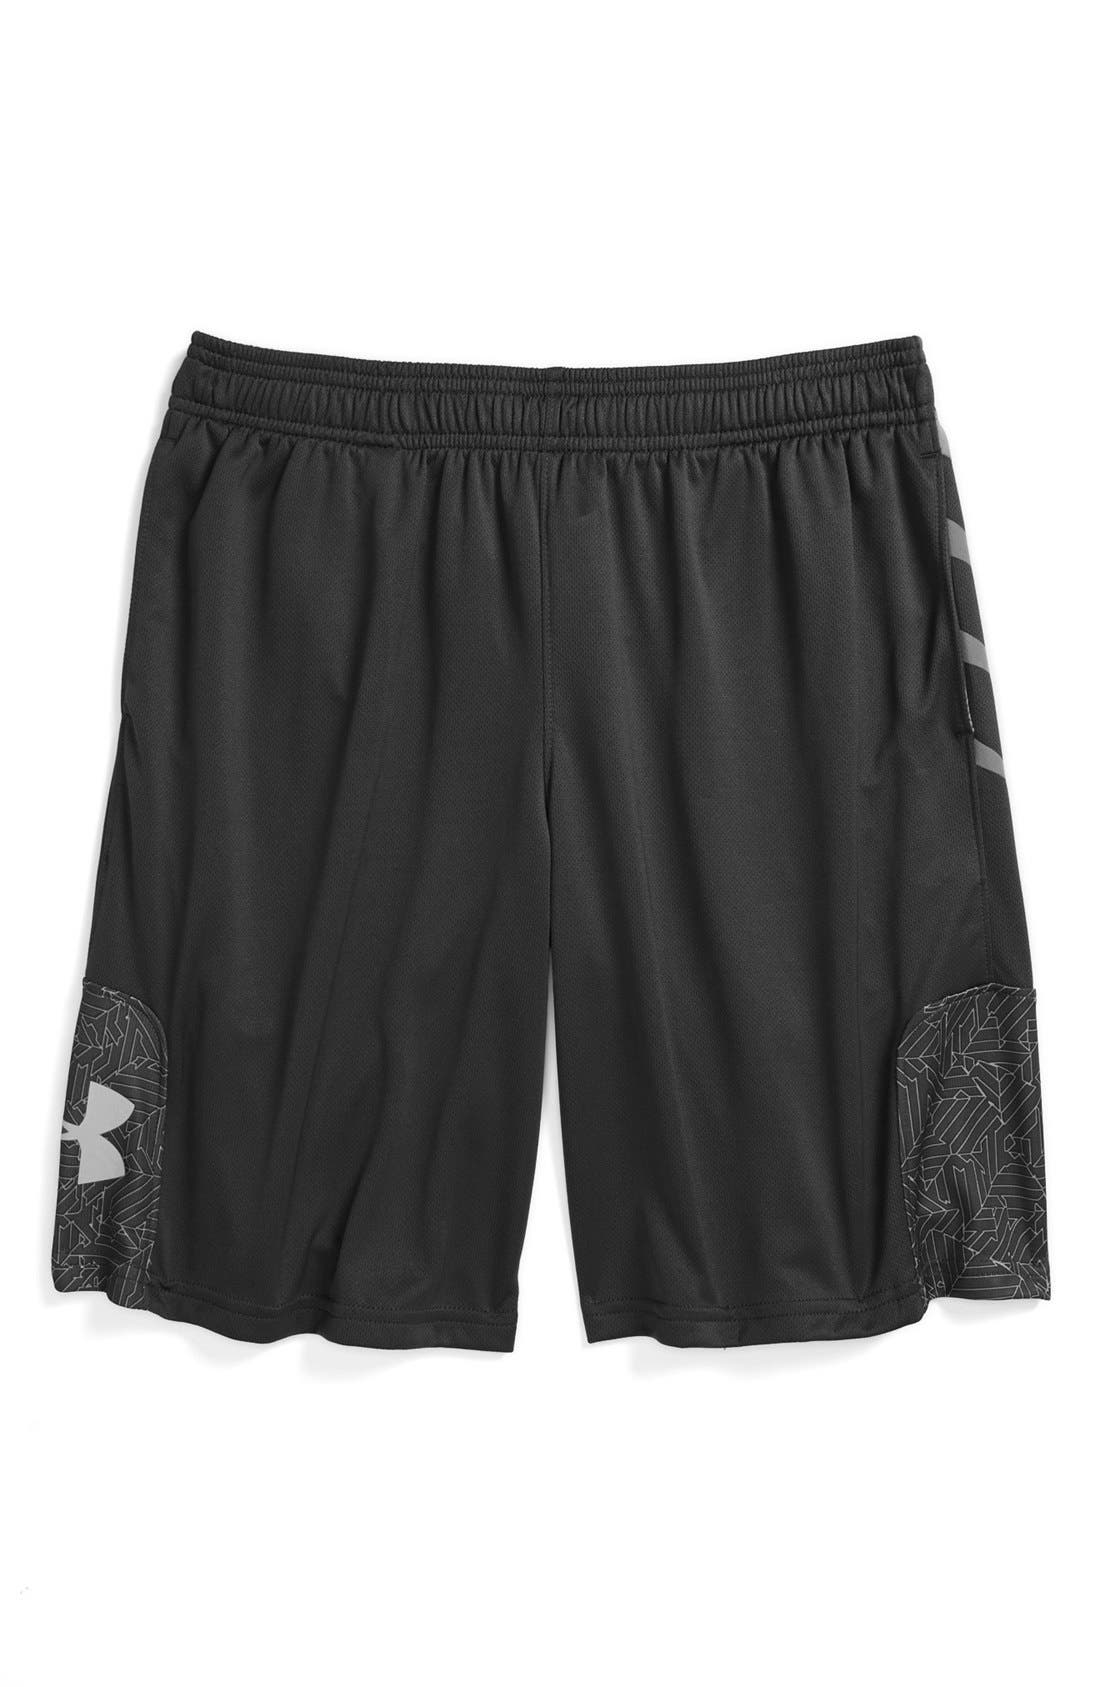 Main Image - Under Armour 'Watch Out' Shorts (Big Boys)